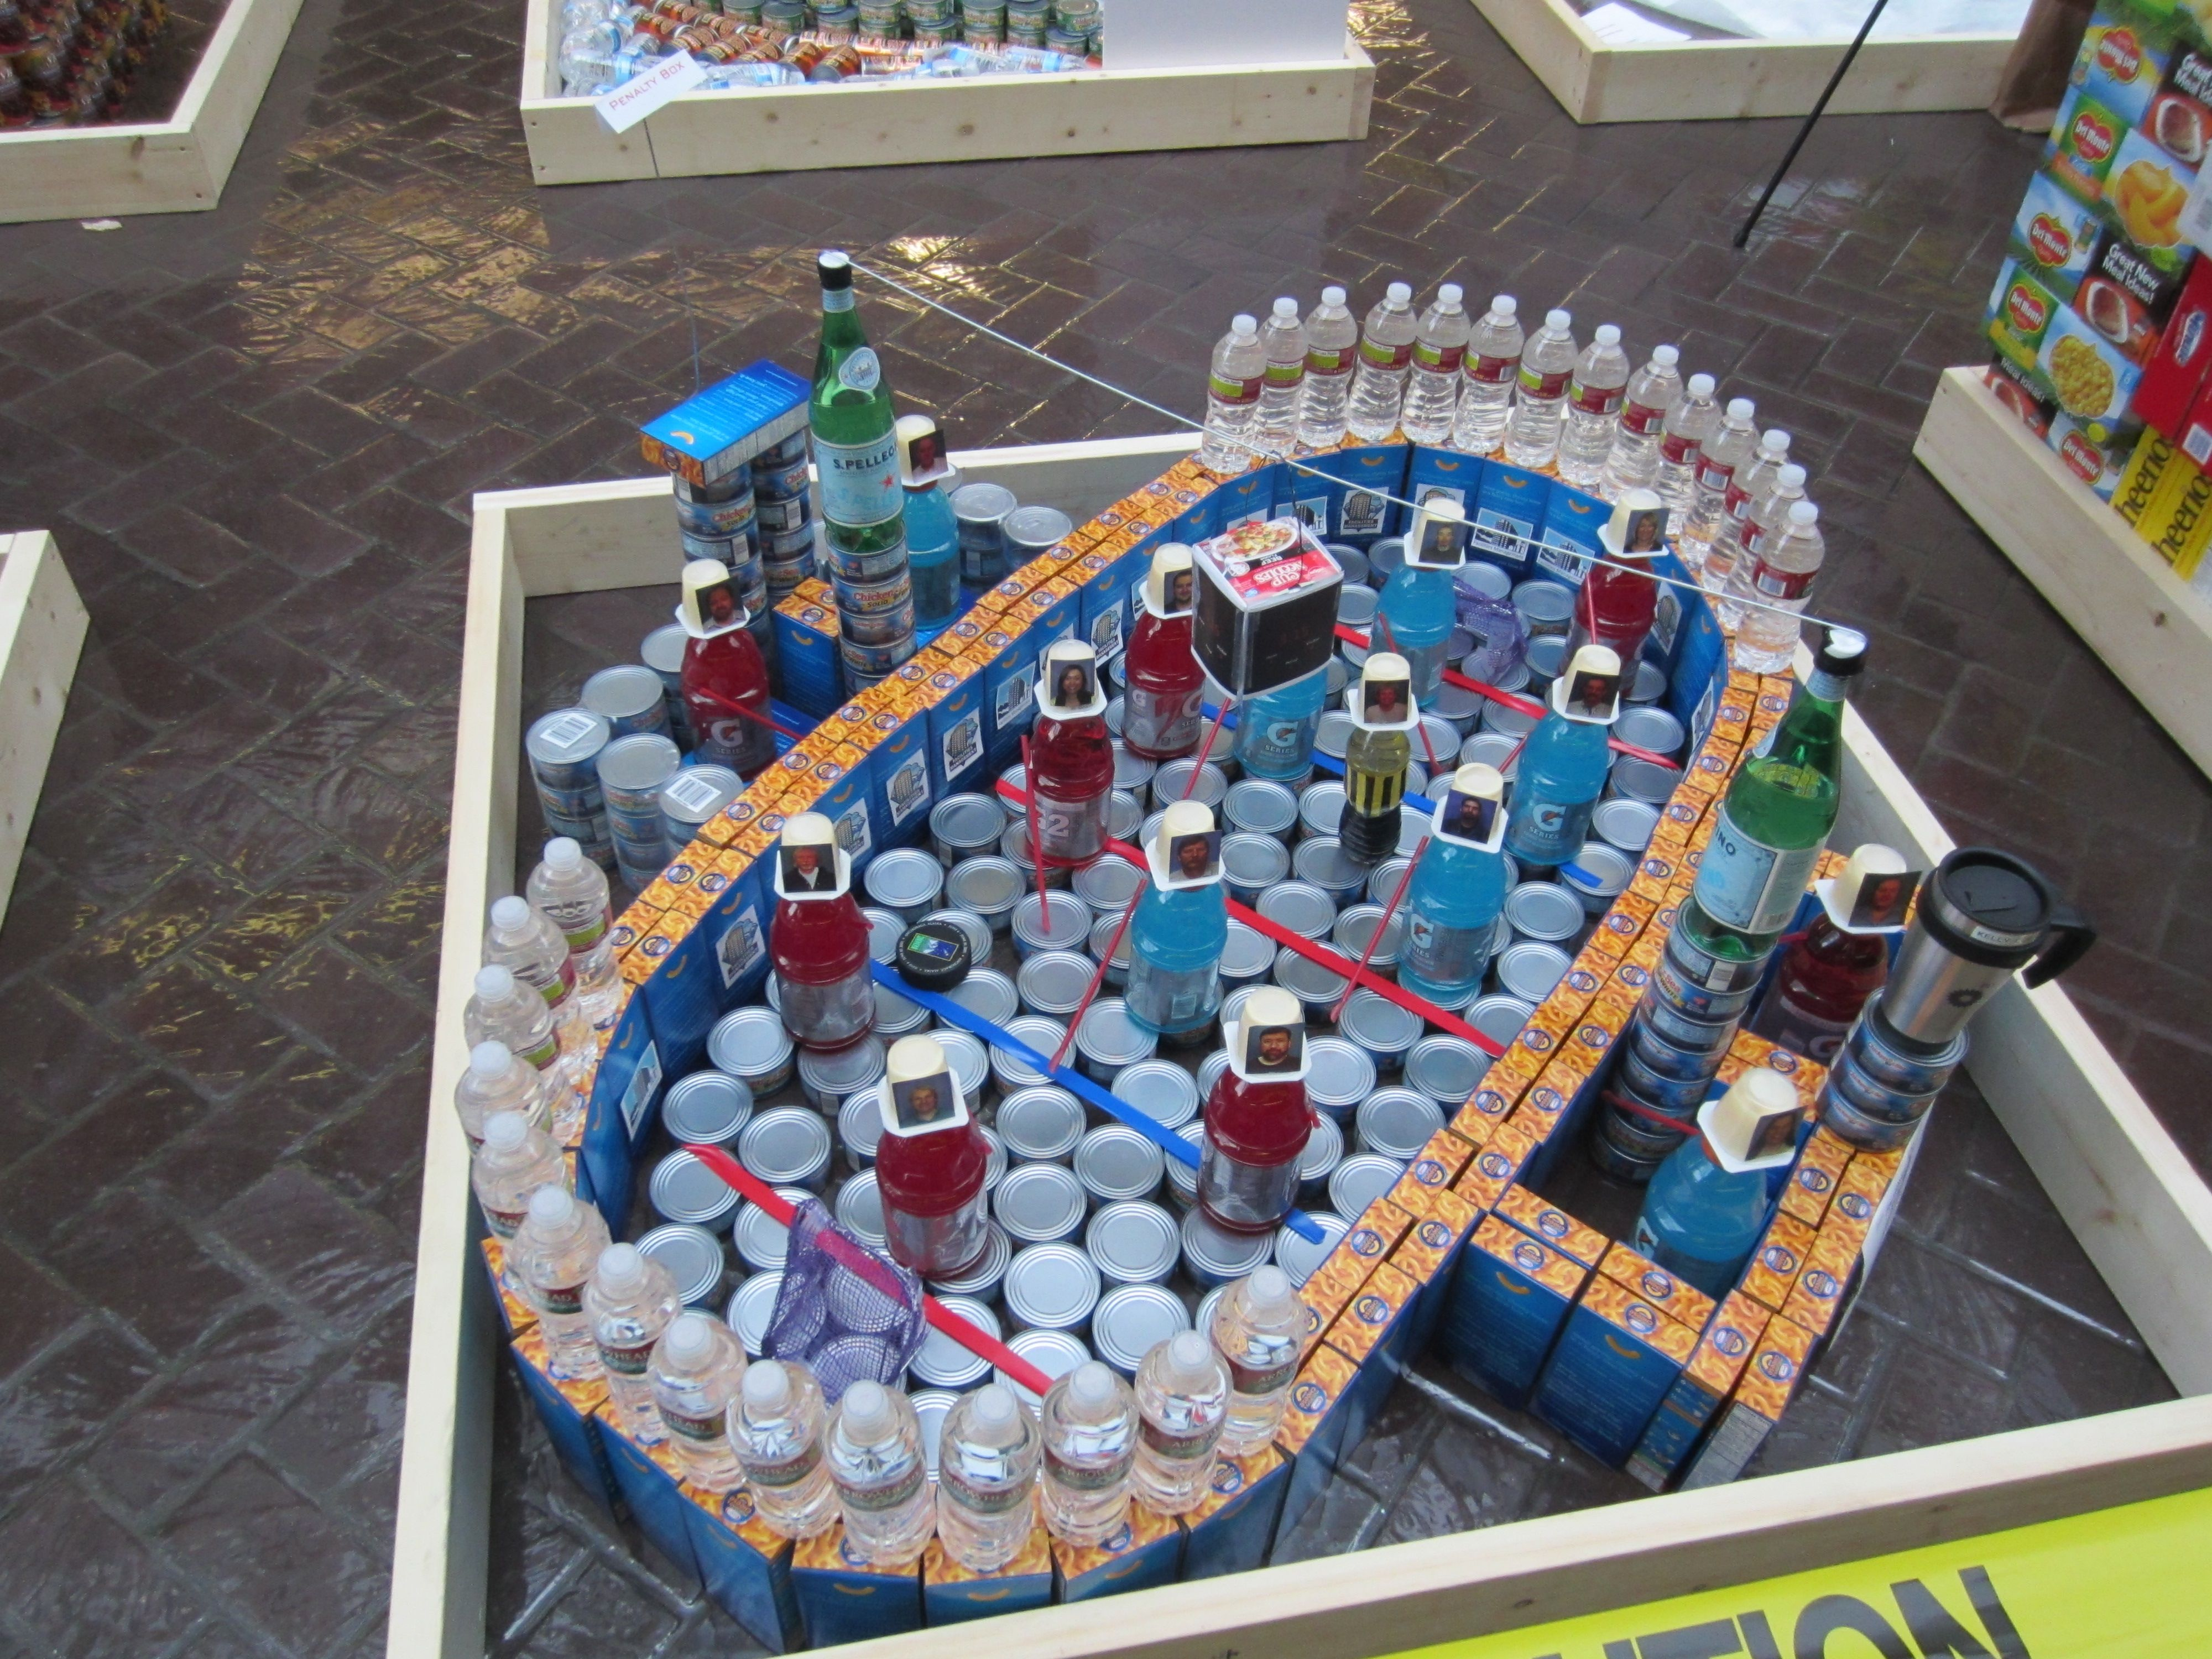 best letter of resignation ever%0A Best ideas about Lego Bedroom on Pinterest Lego room Lego